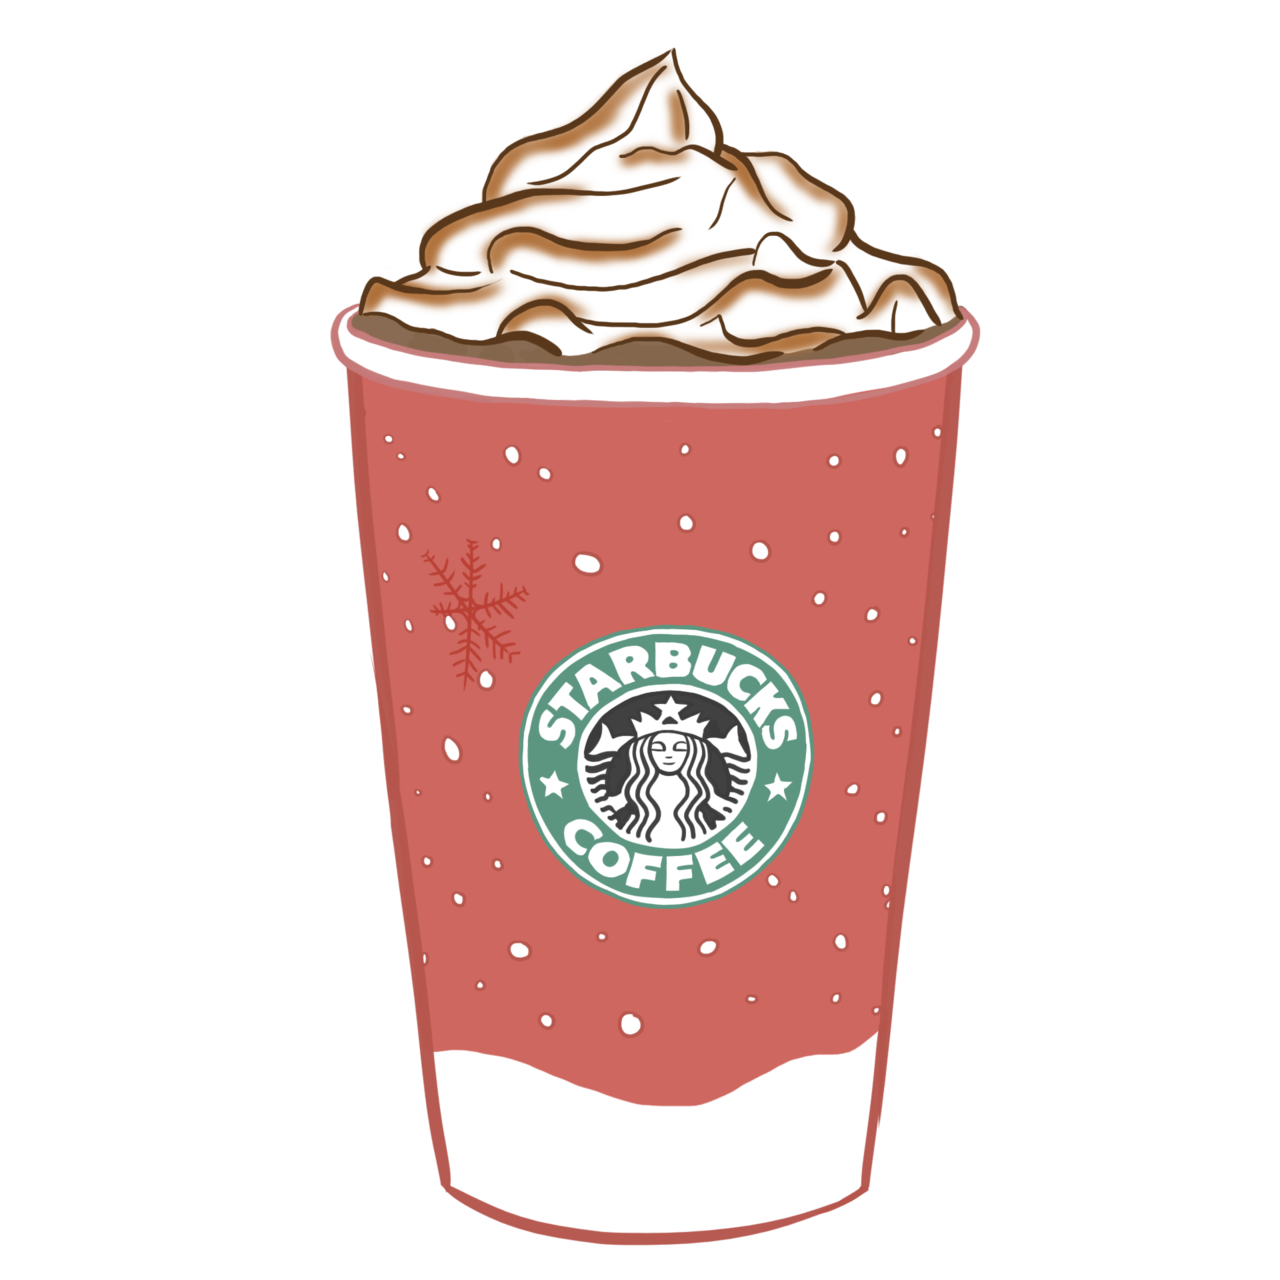 Tumblr Transparent Starbucks Pink | www.pixshark.com ...